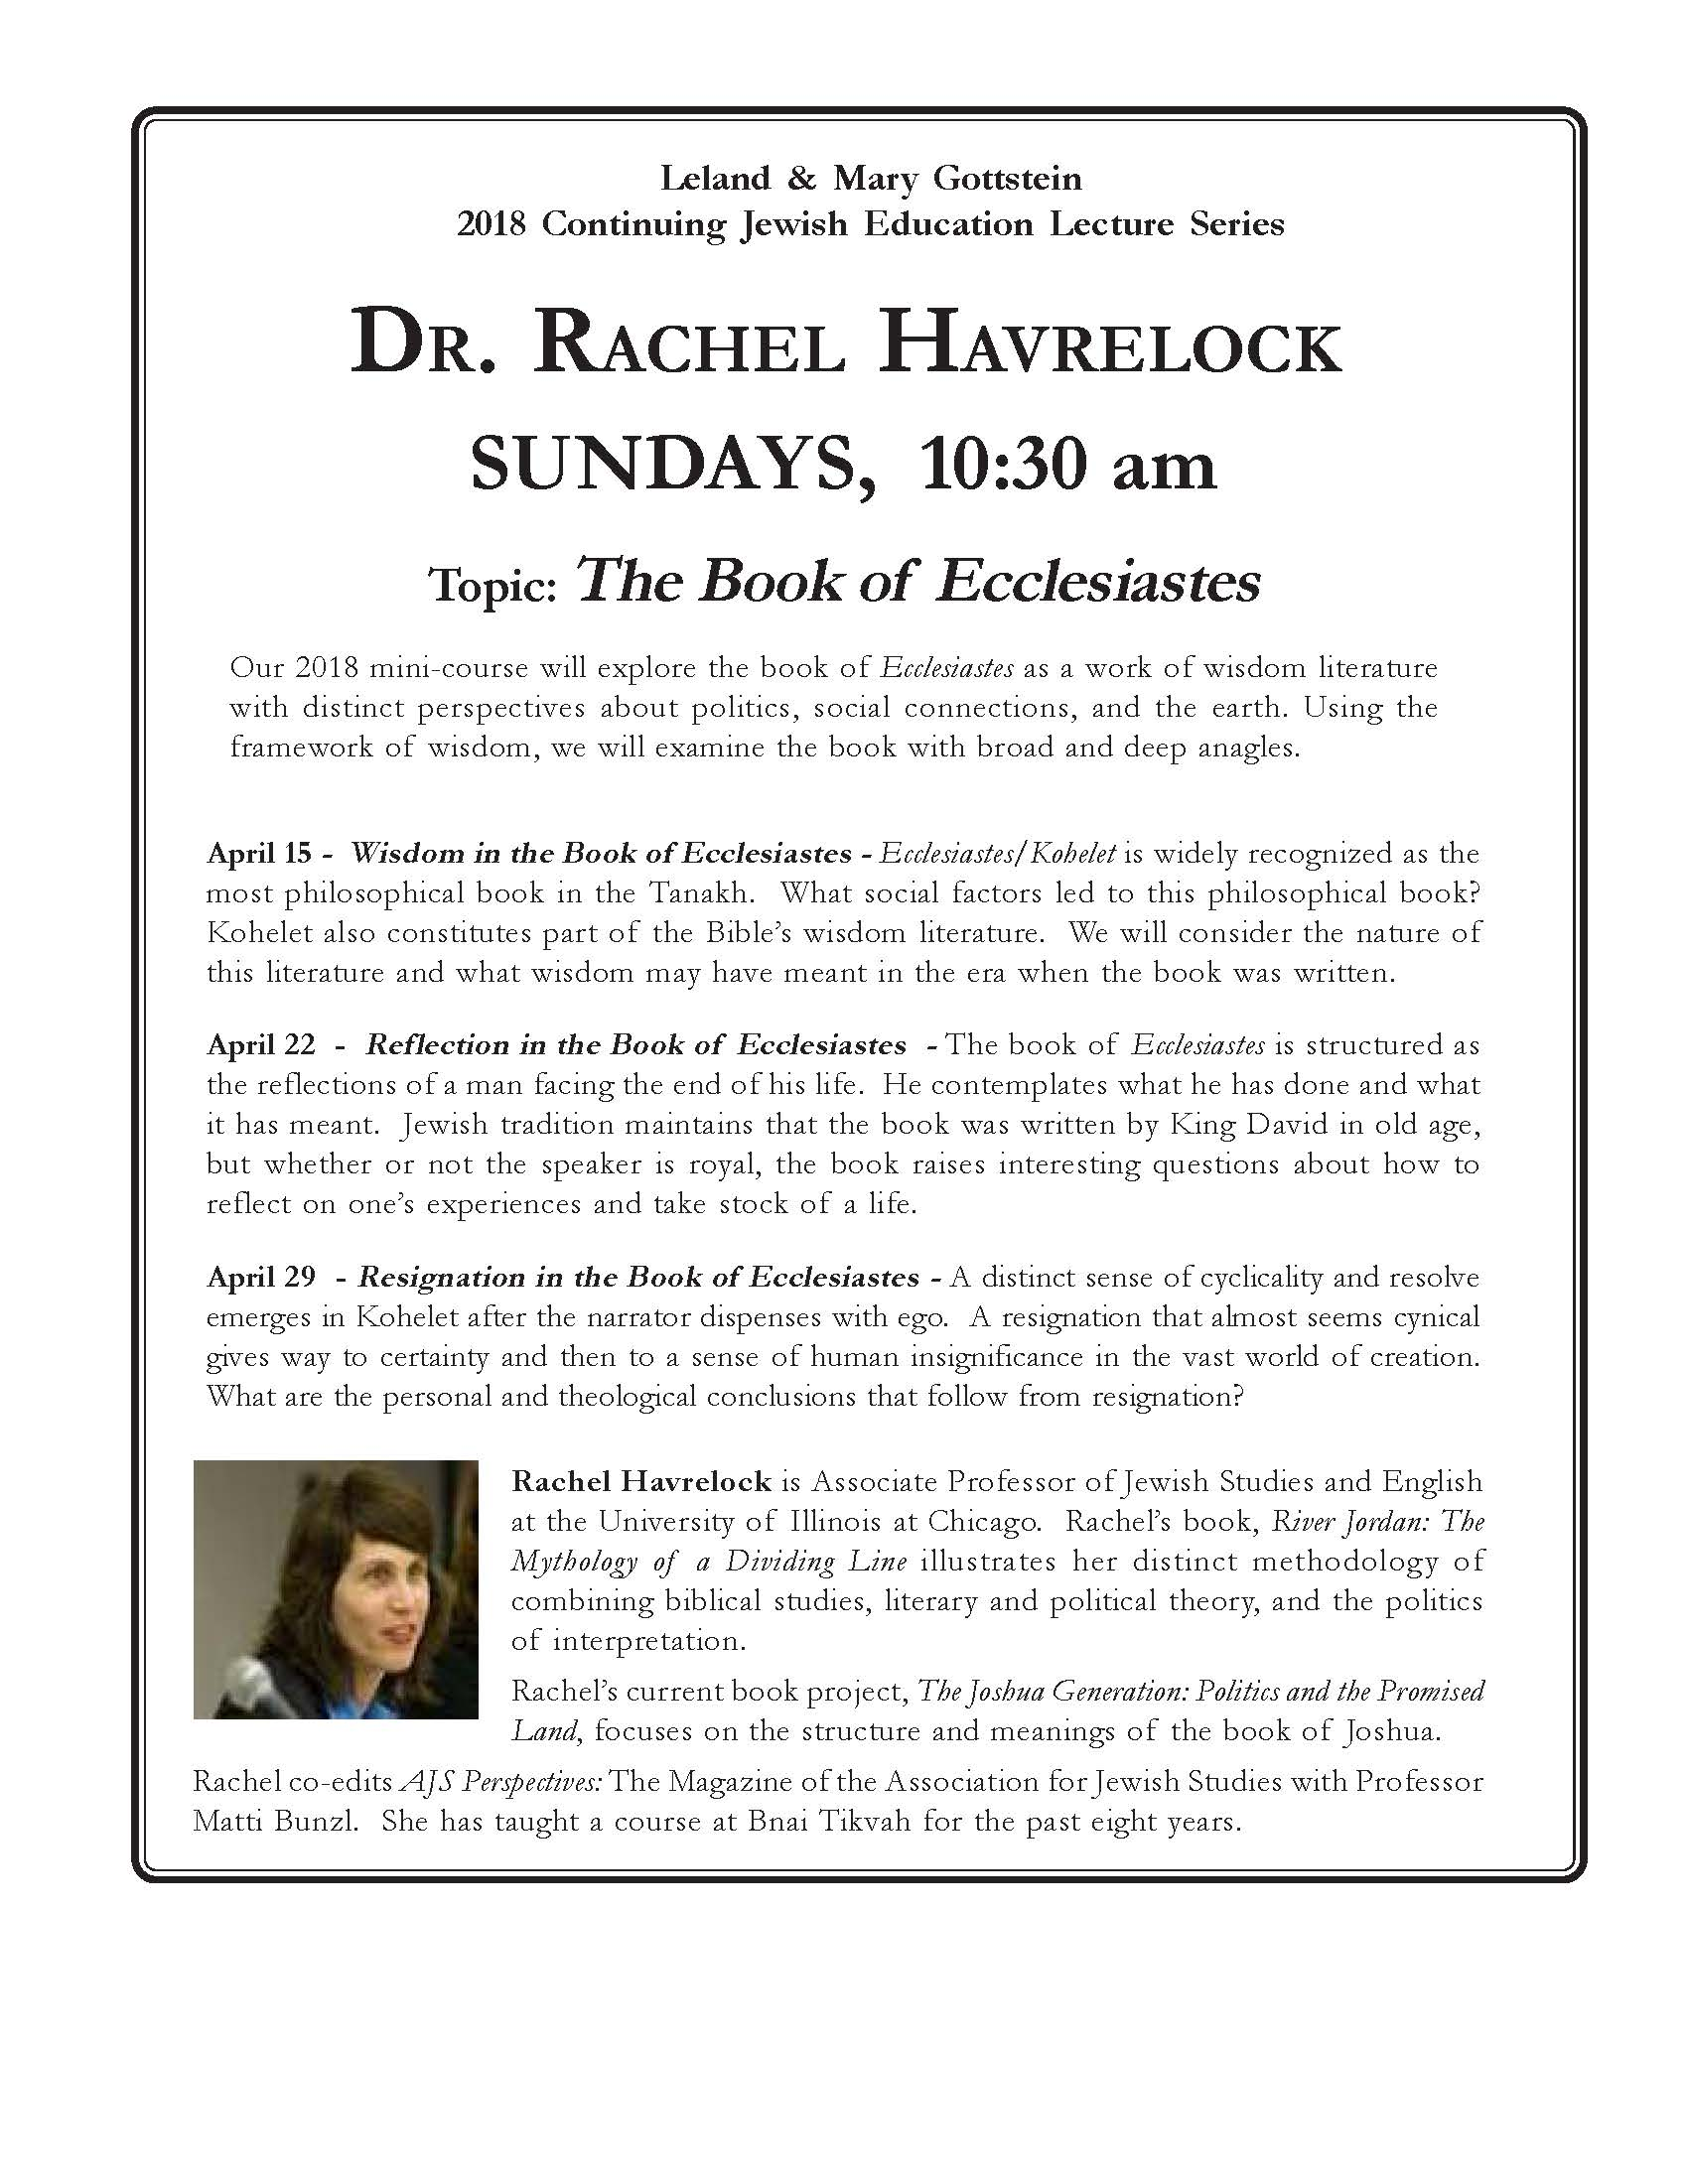 Leland & Mary Gottstein 2018 Continuing Jewish Education Lecture Series Presents Dr. Rachel Havrelock